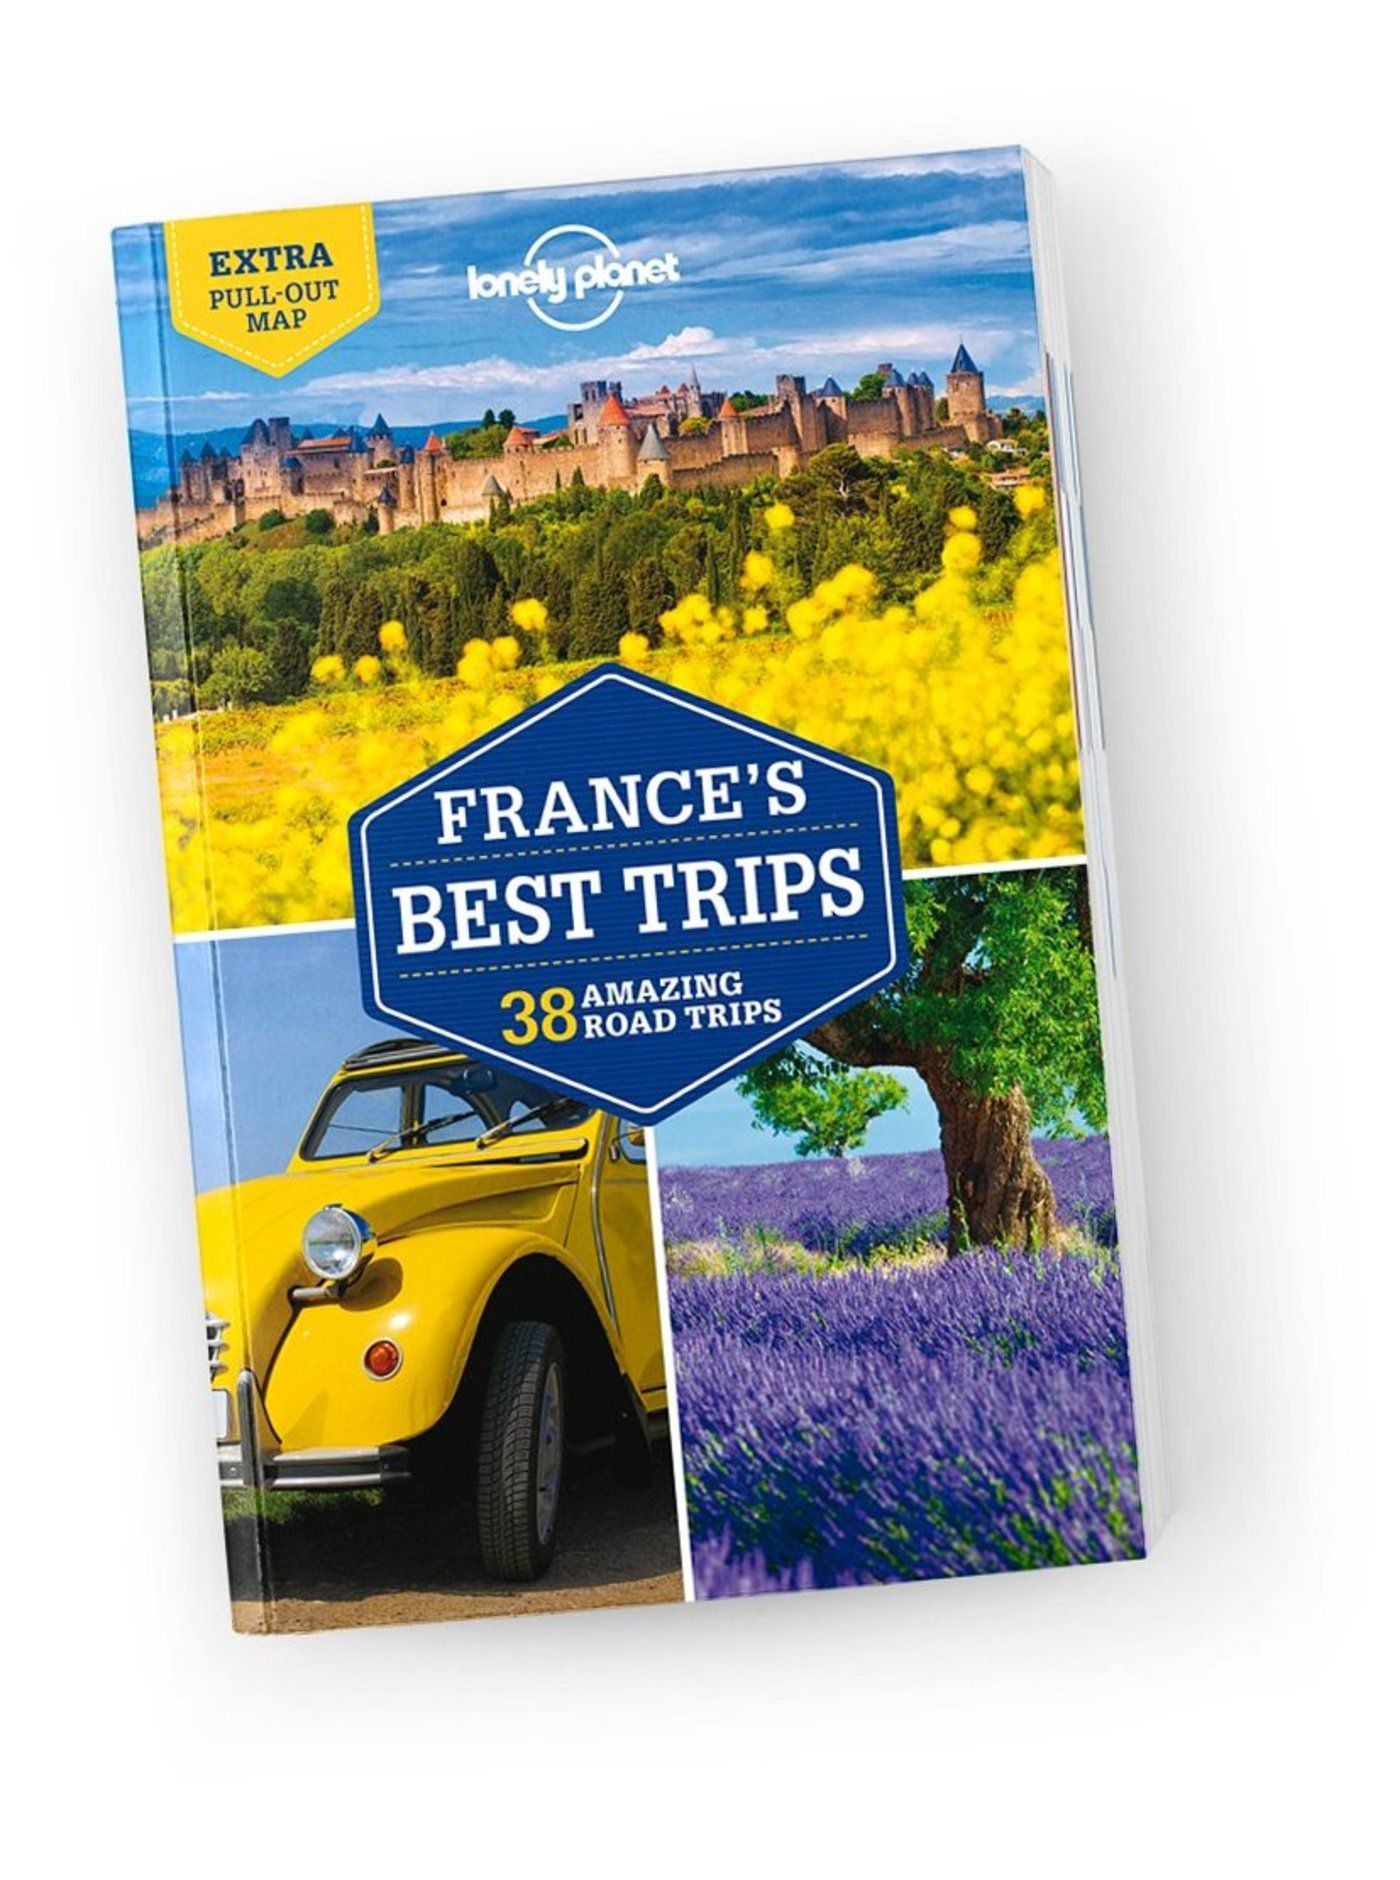 France's Best Trips - Paris & Northeastern (PDF Chapter), 2nd Edition Mar 2017 by Lonely Planet 9781786573209002